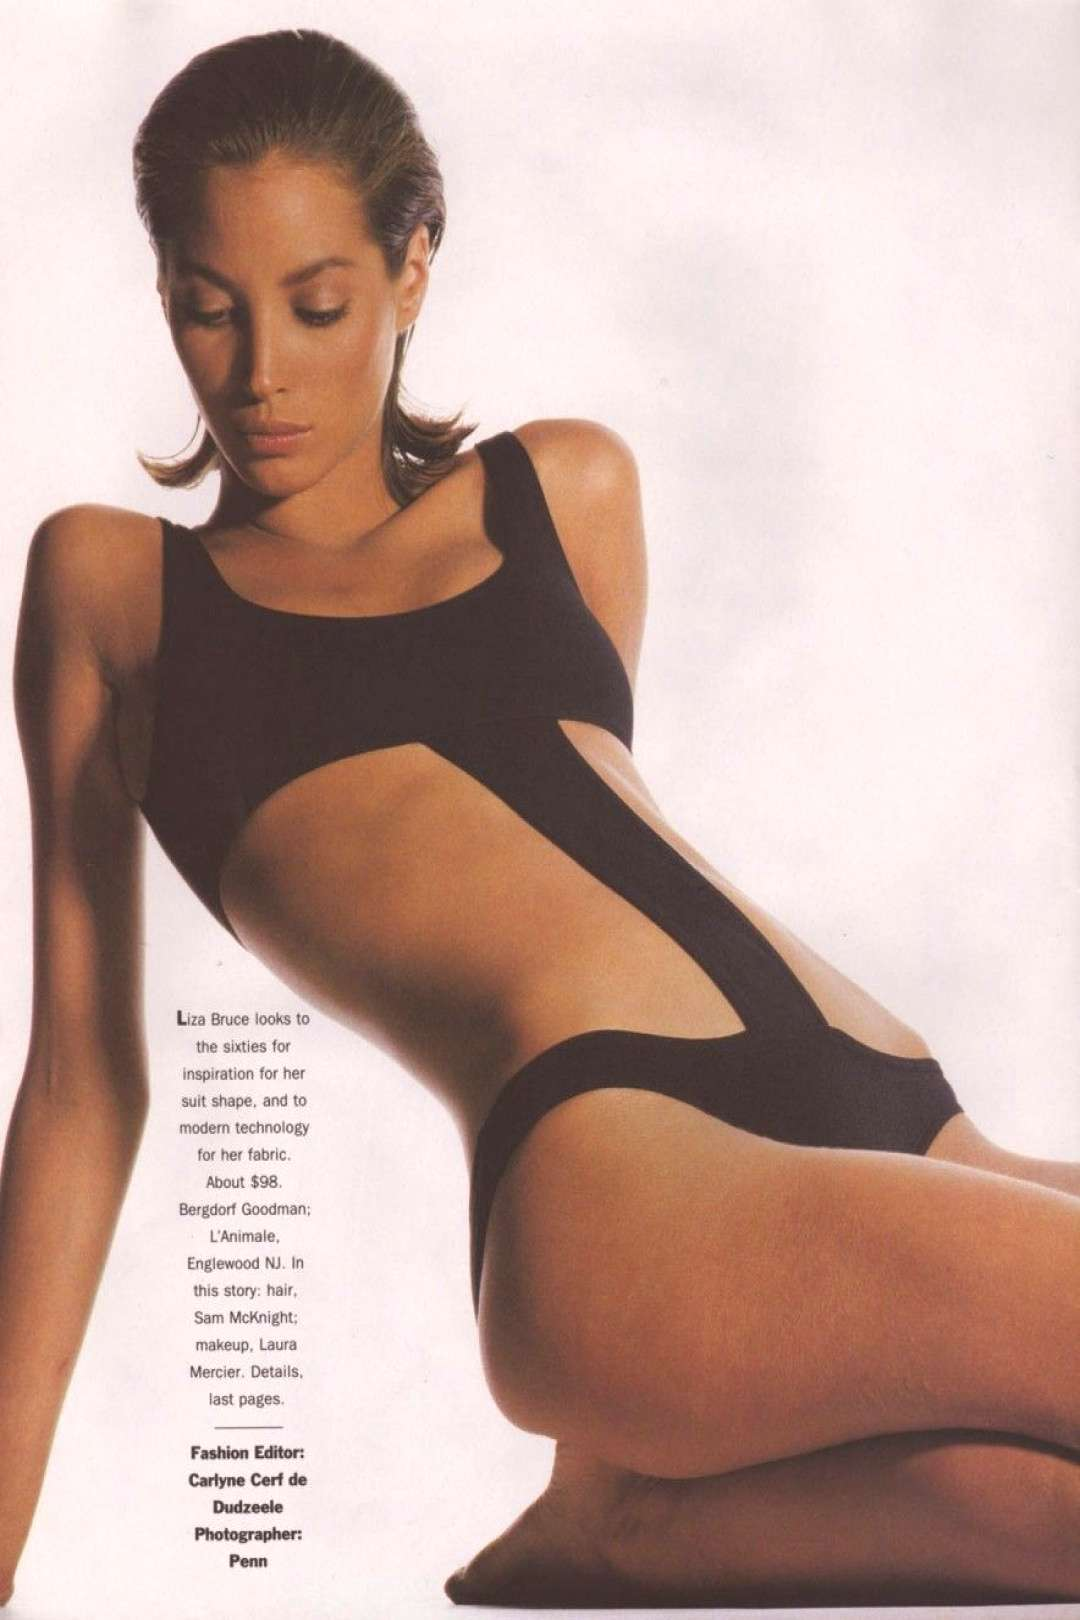 Christy Turlington photo 661 of 945 pics, wallpaper - photo - ThePlace2